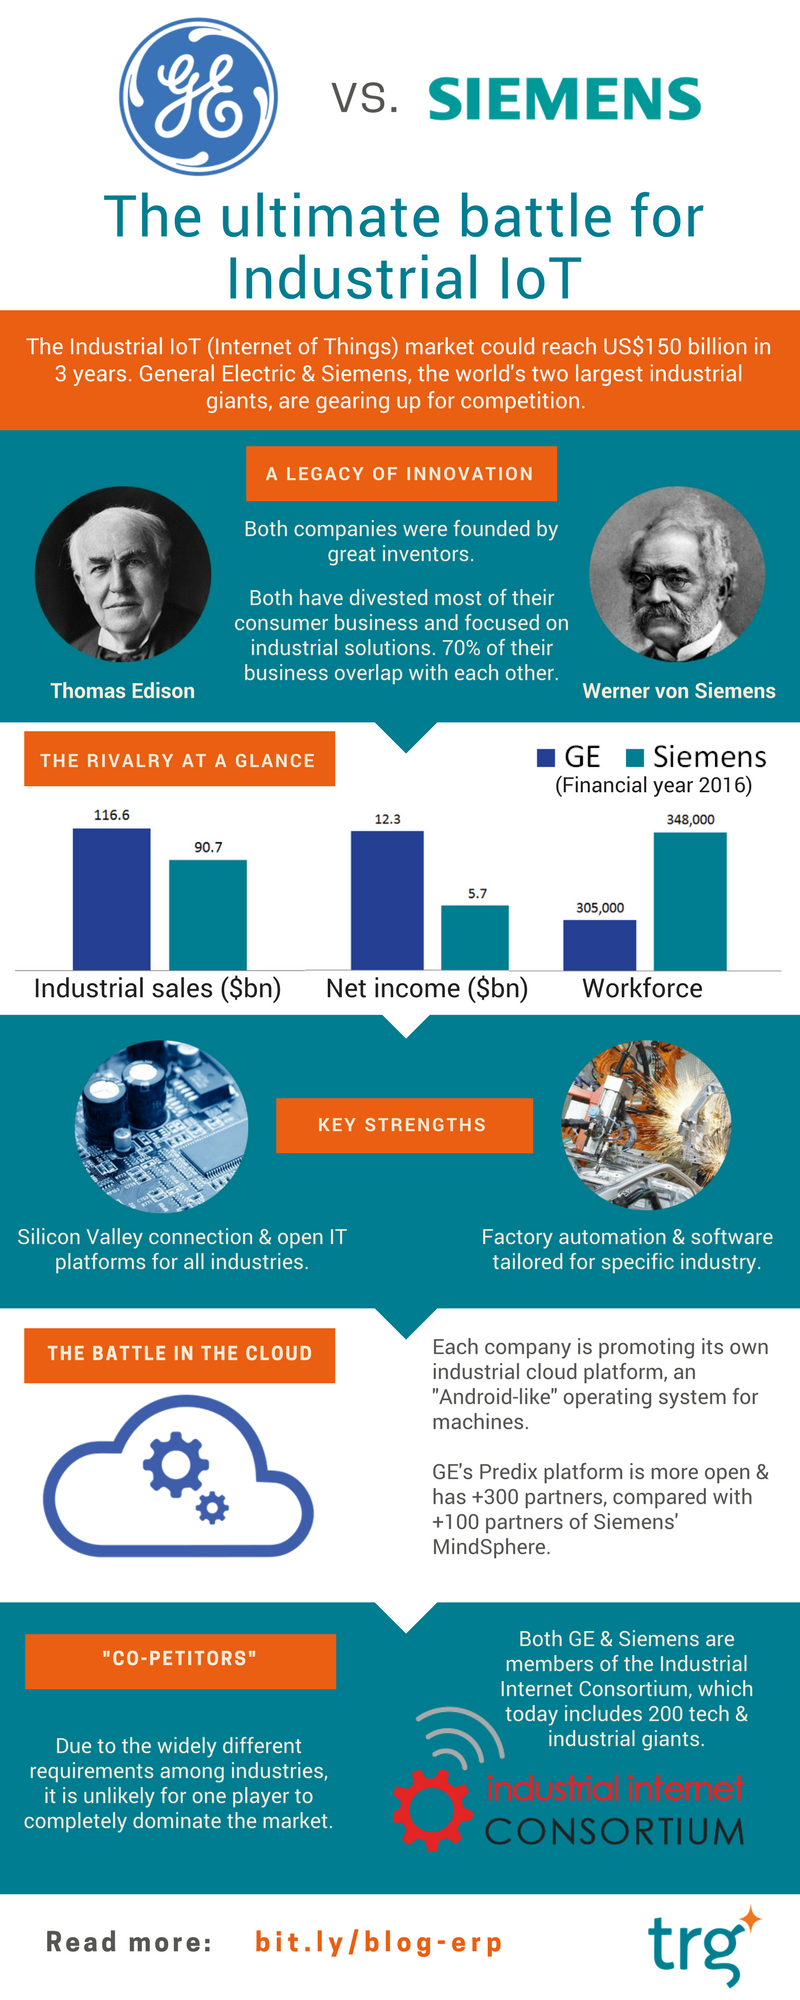 GE vs. Siemens - the battle for Industrial Internet of Things